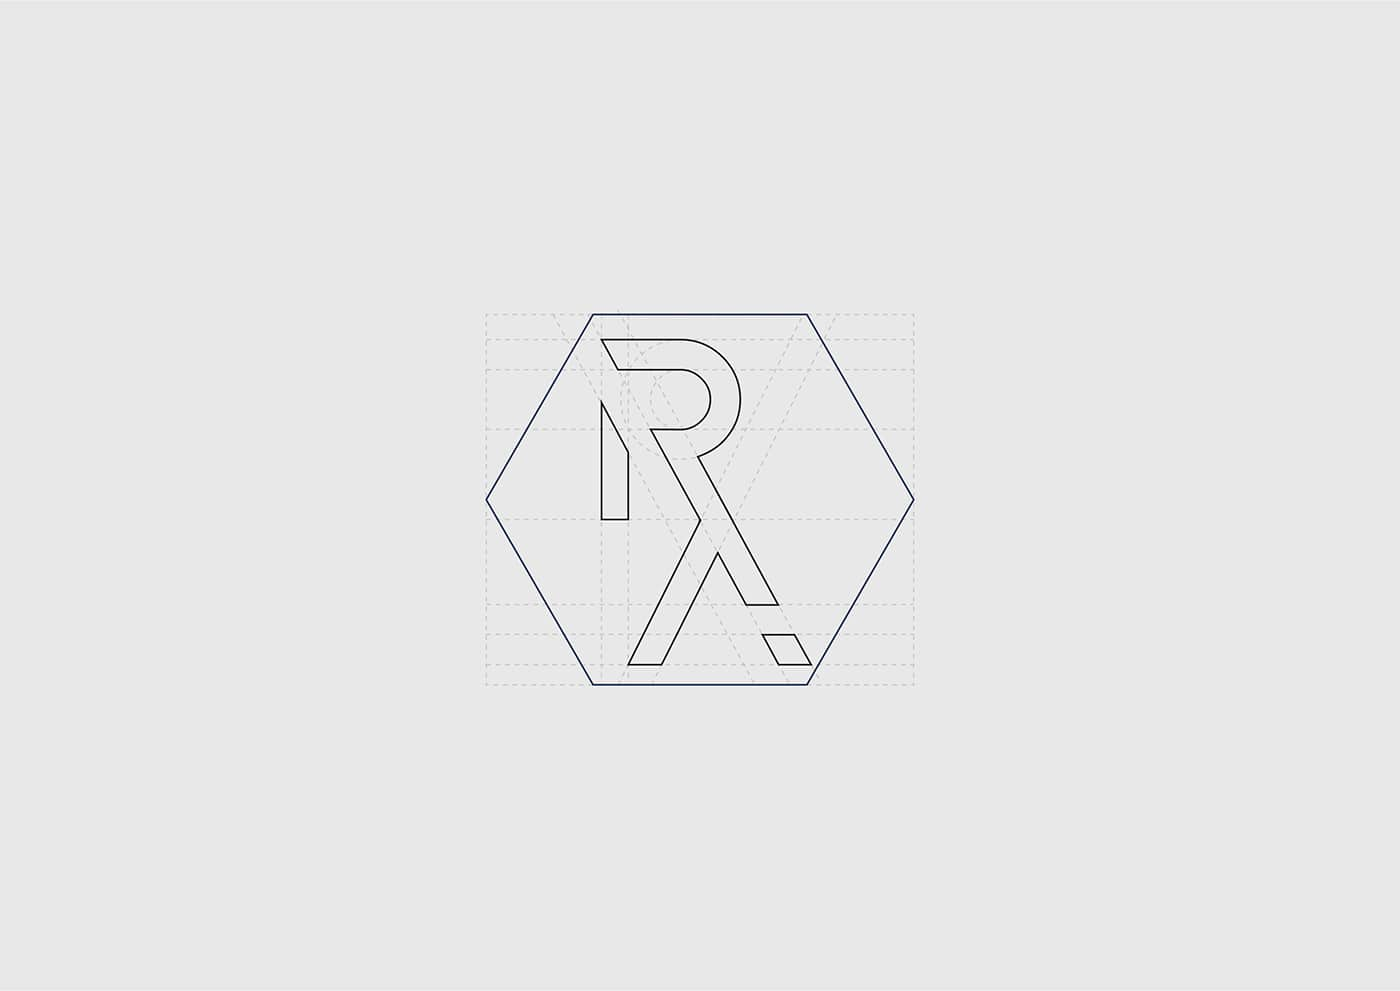 Rohde design logo tedesco